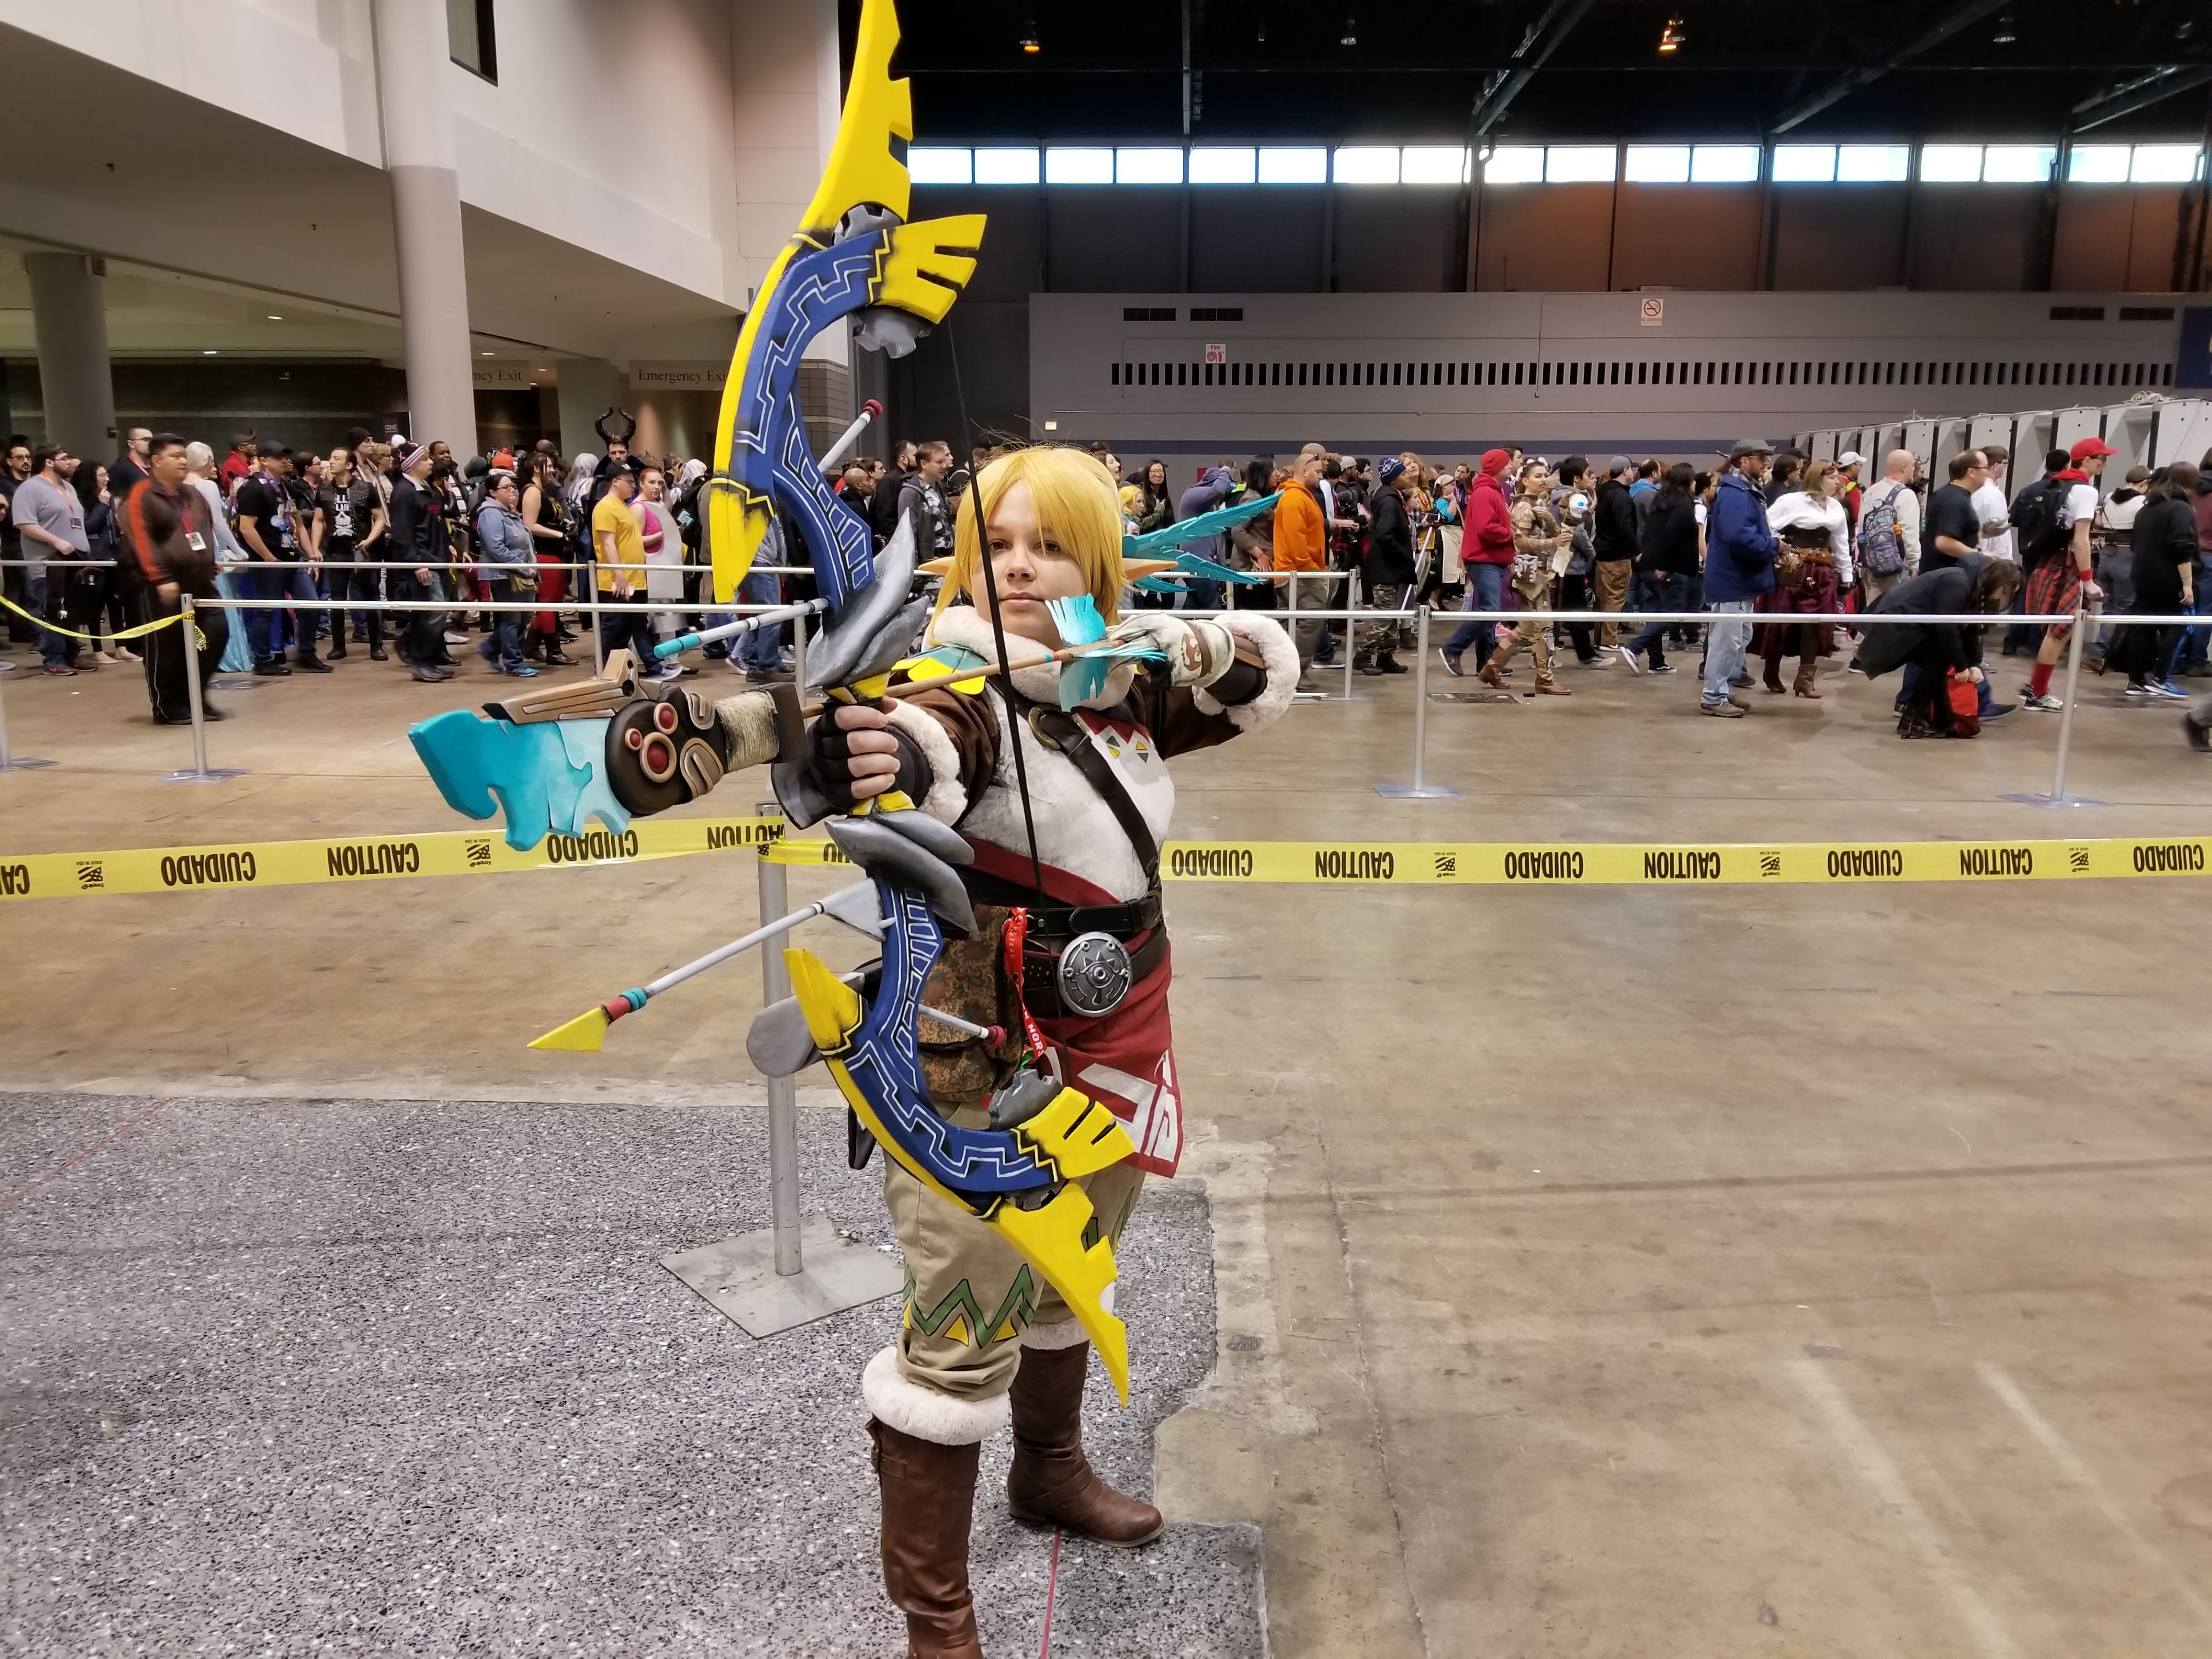 Link cosplayer dressed in Rito garb from The Legend of Zelda: Breath of the Wild at C2E2. Image taken by C. Wassenaar.